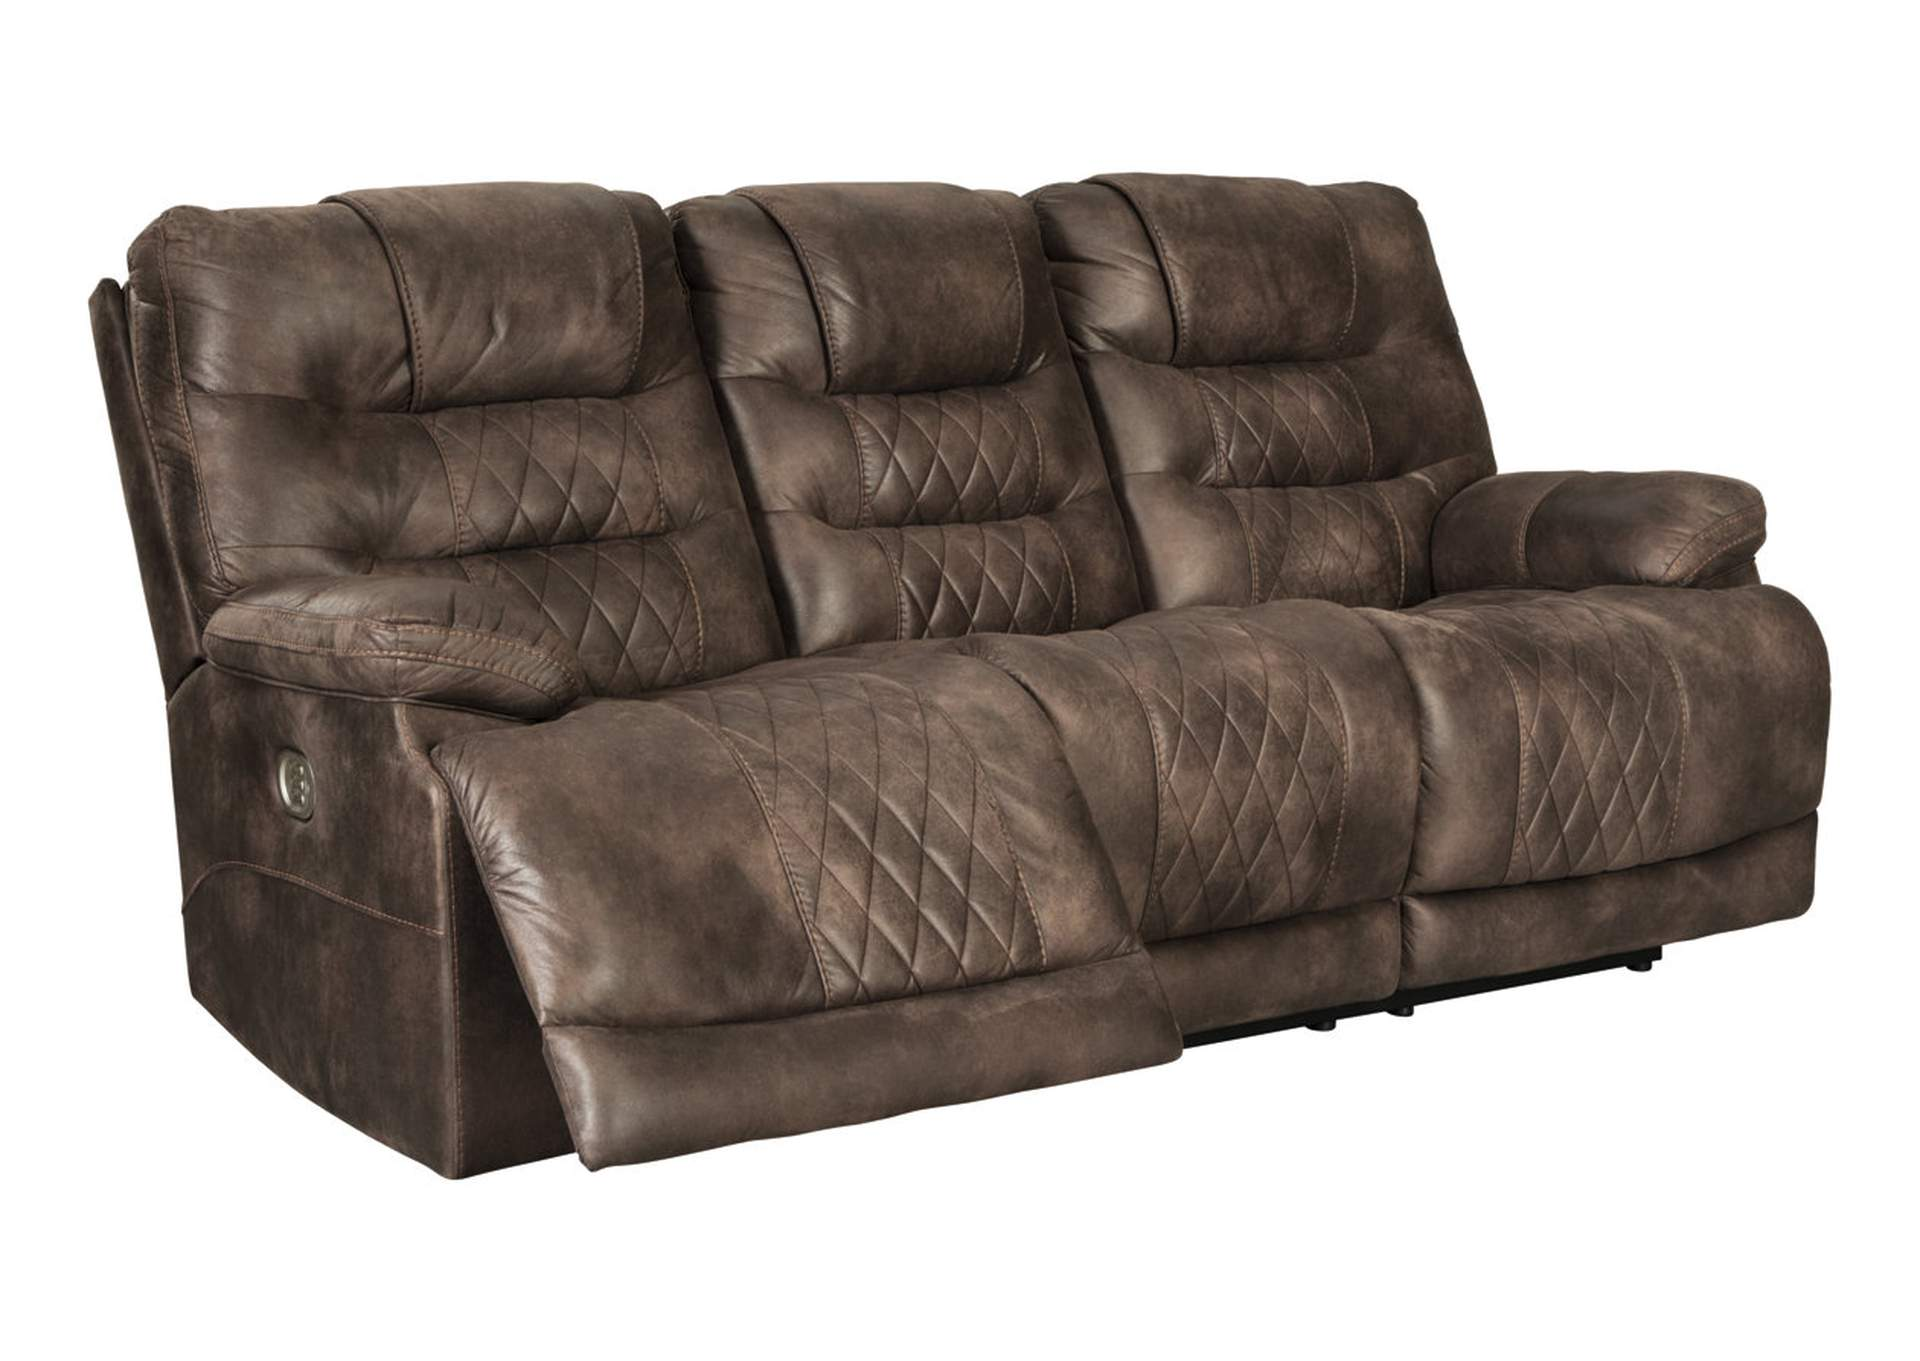 Welsford Walnut Power Reclining Sofa w/Adjustable Headrest,Signature Design By Ashley